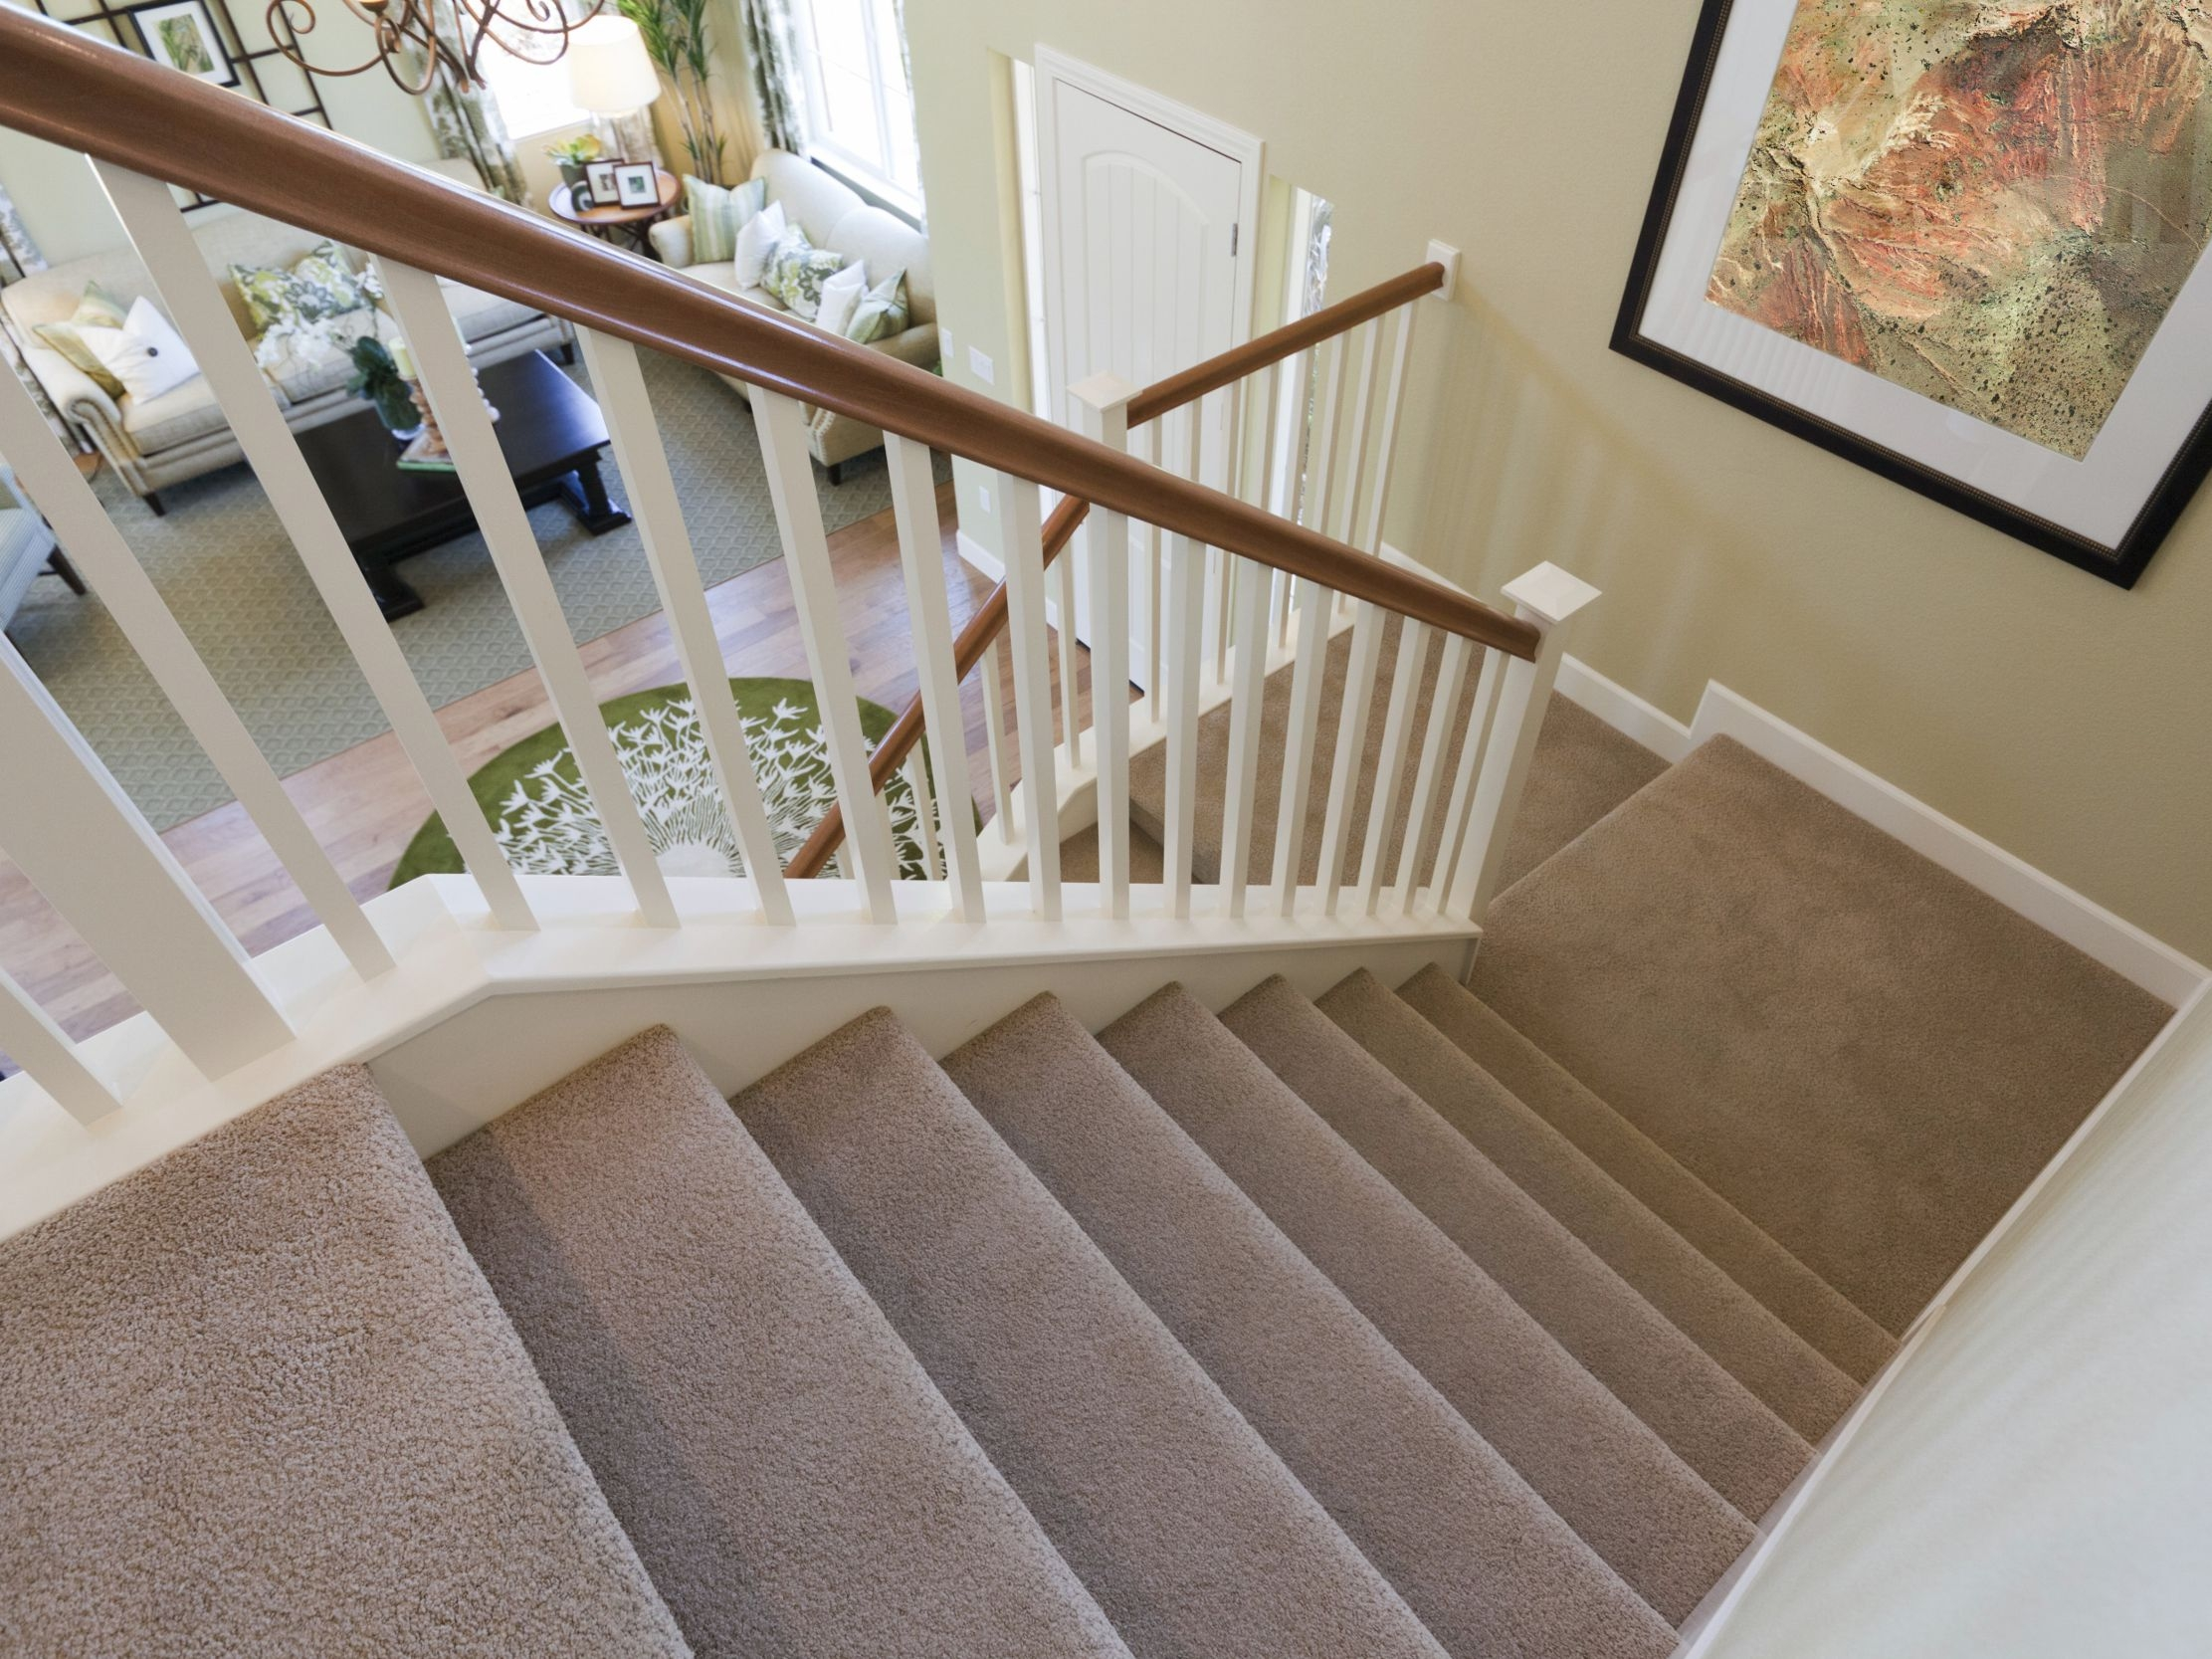 The Best Carpet For Stairs | Heavy Duty Stair Carpet | Stair Runners | Stair Treads Carpet | Stair Risers | Rug Gripper | Carpet Protector